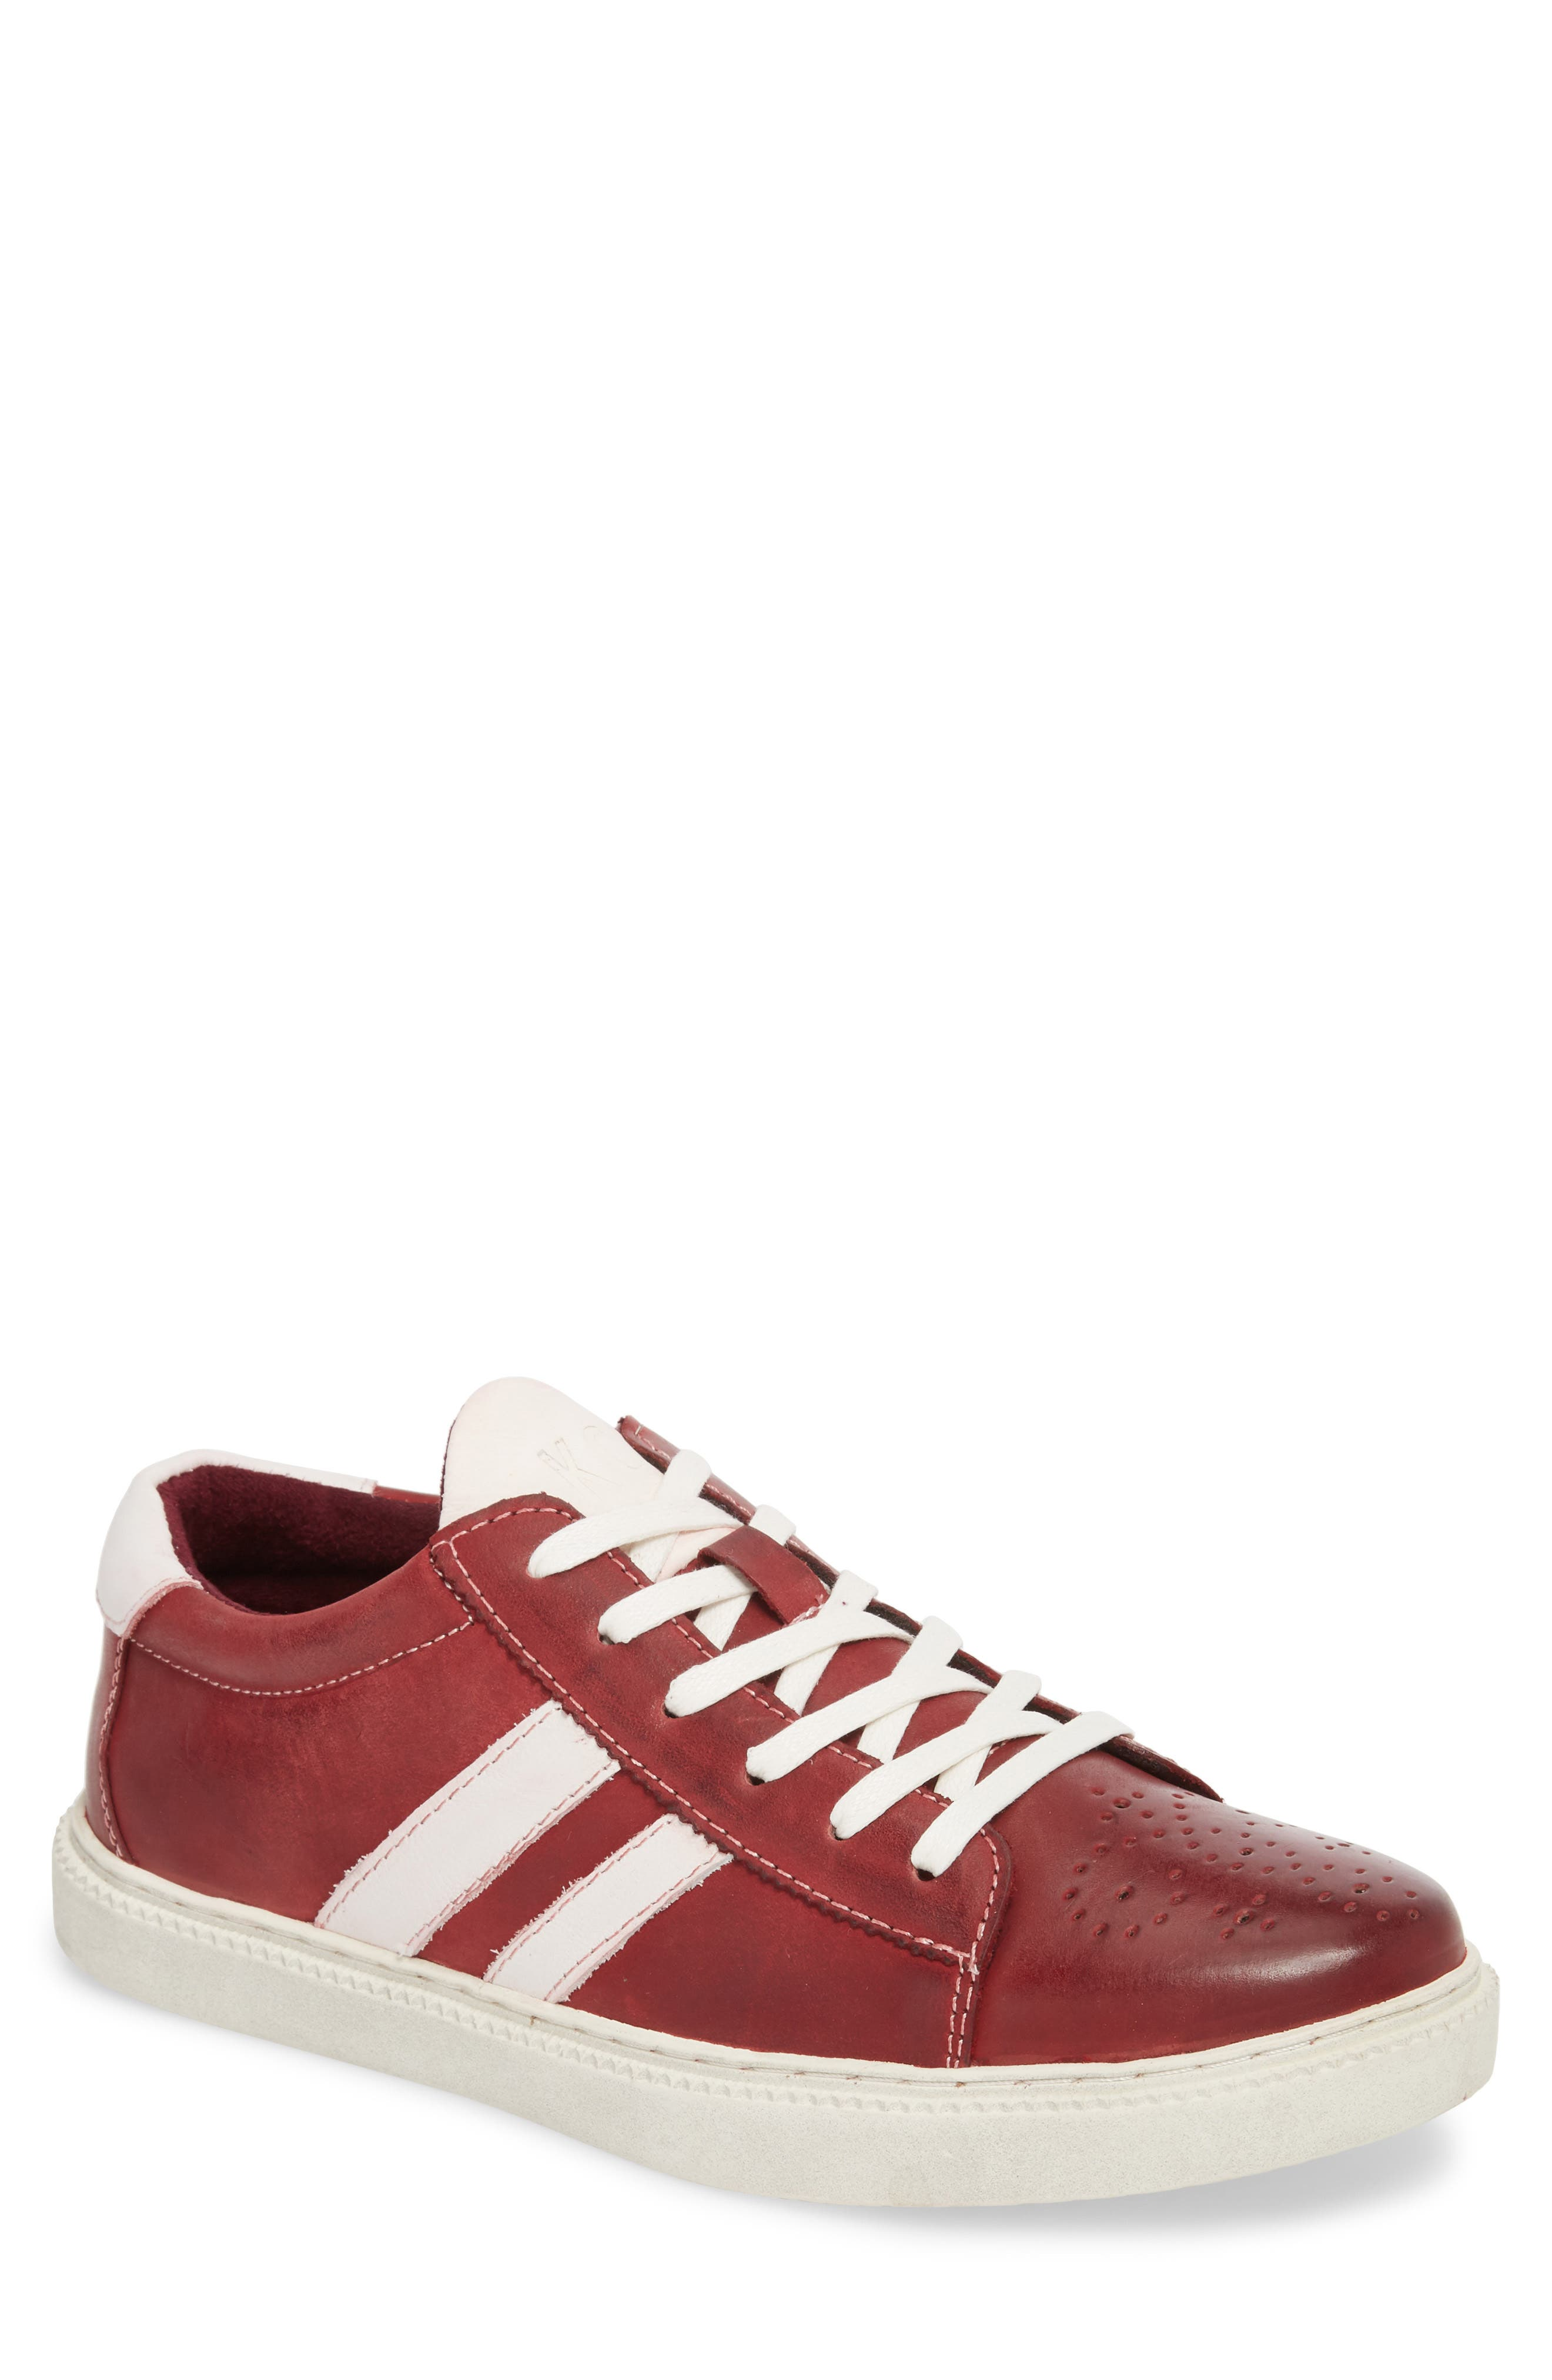 Madox Low Top Sneaker,                             Main thumbnail 1, color,                             Red